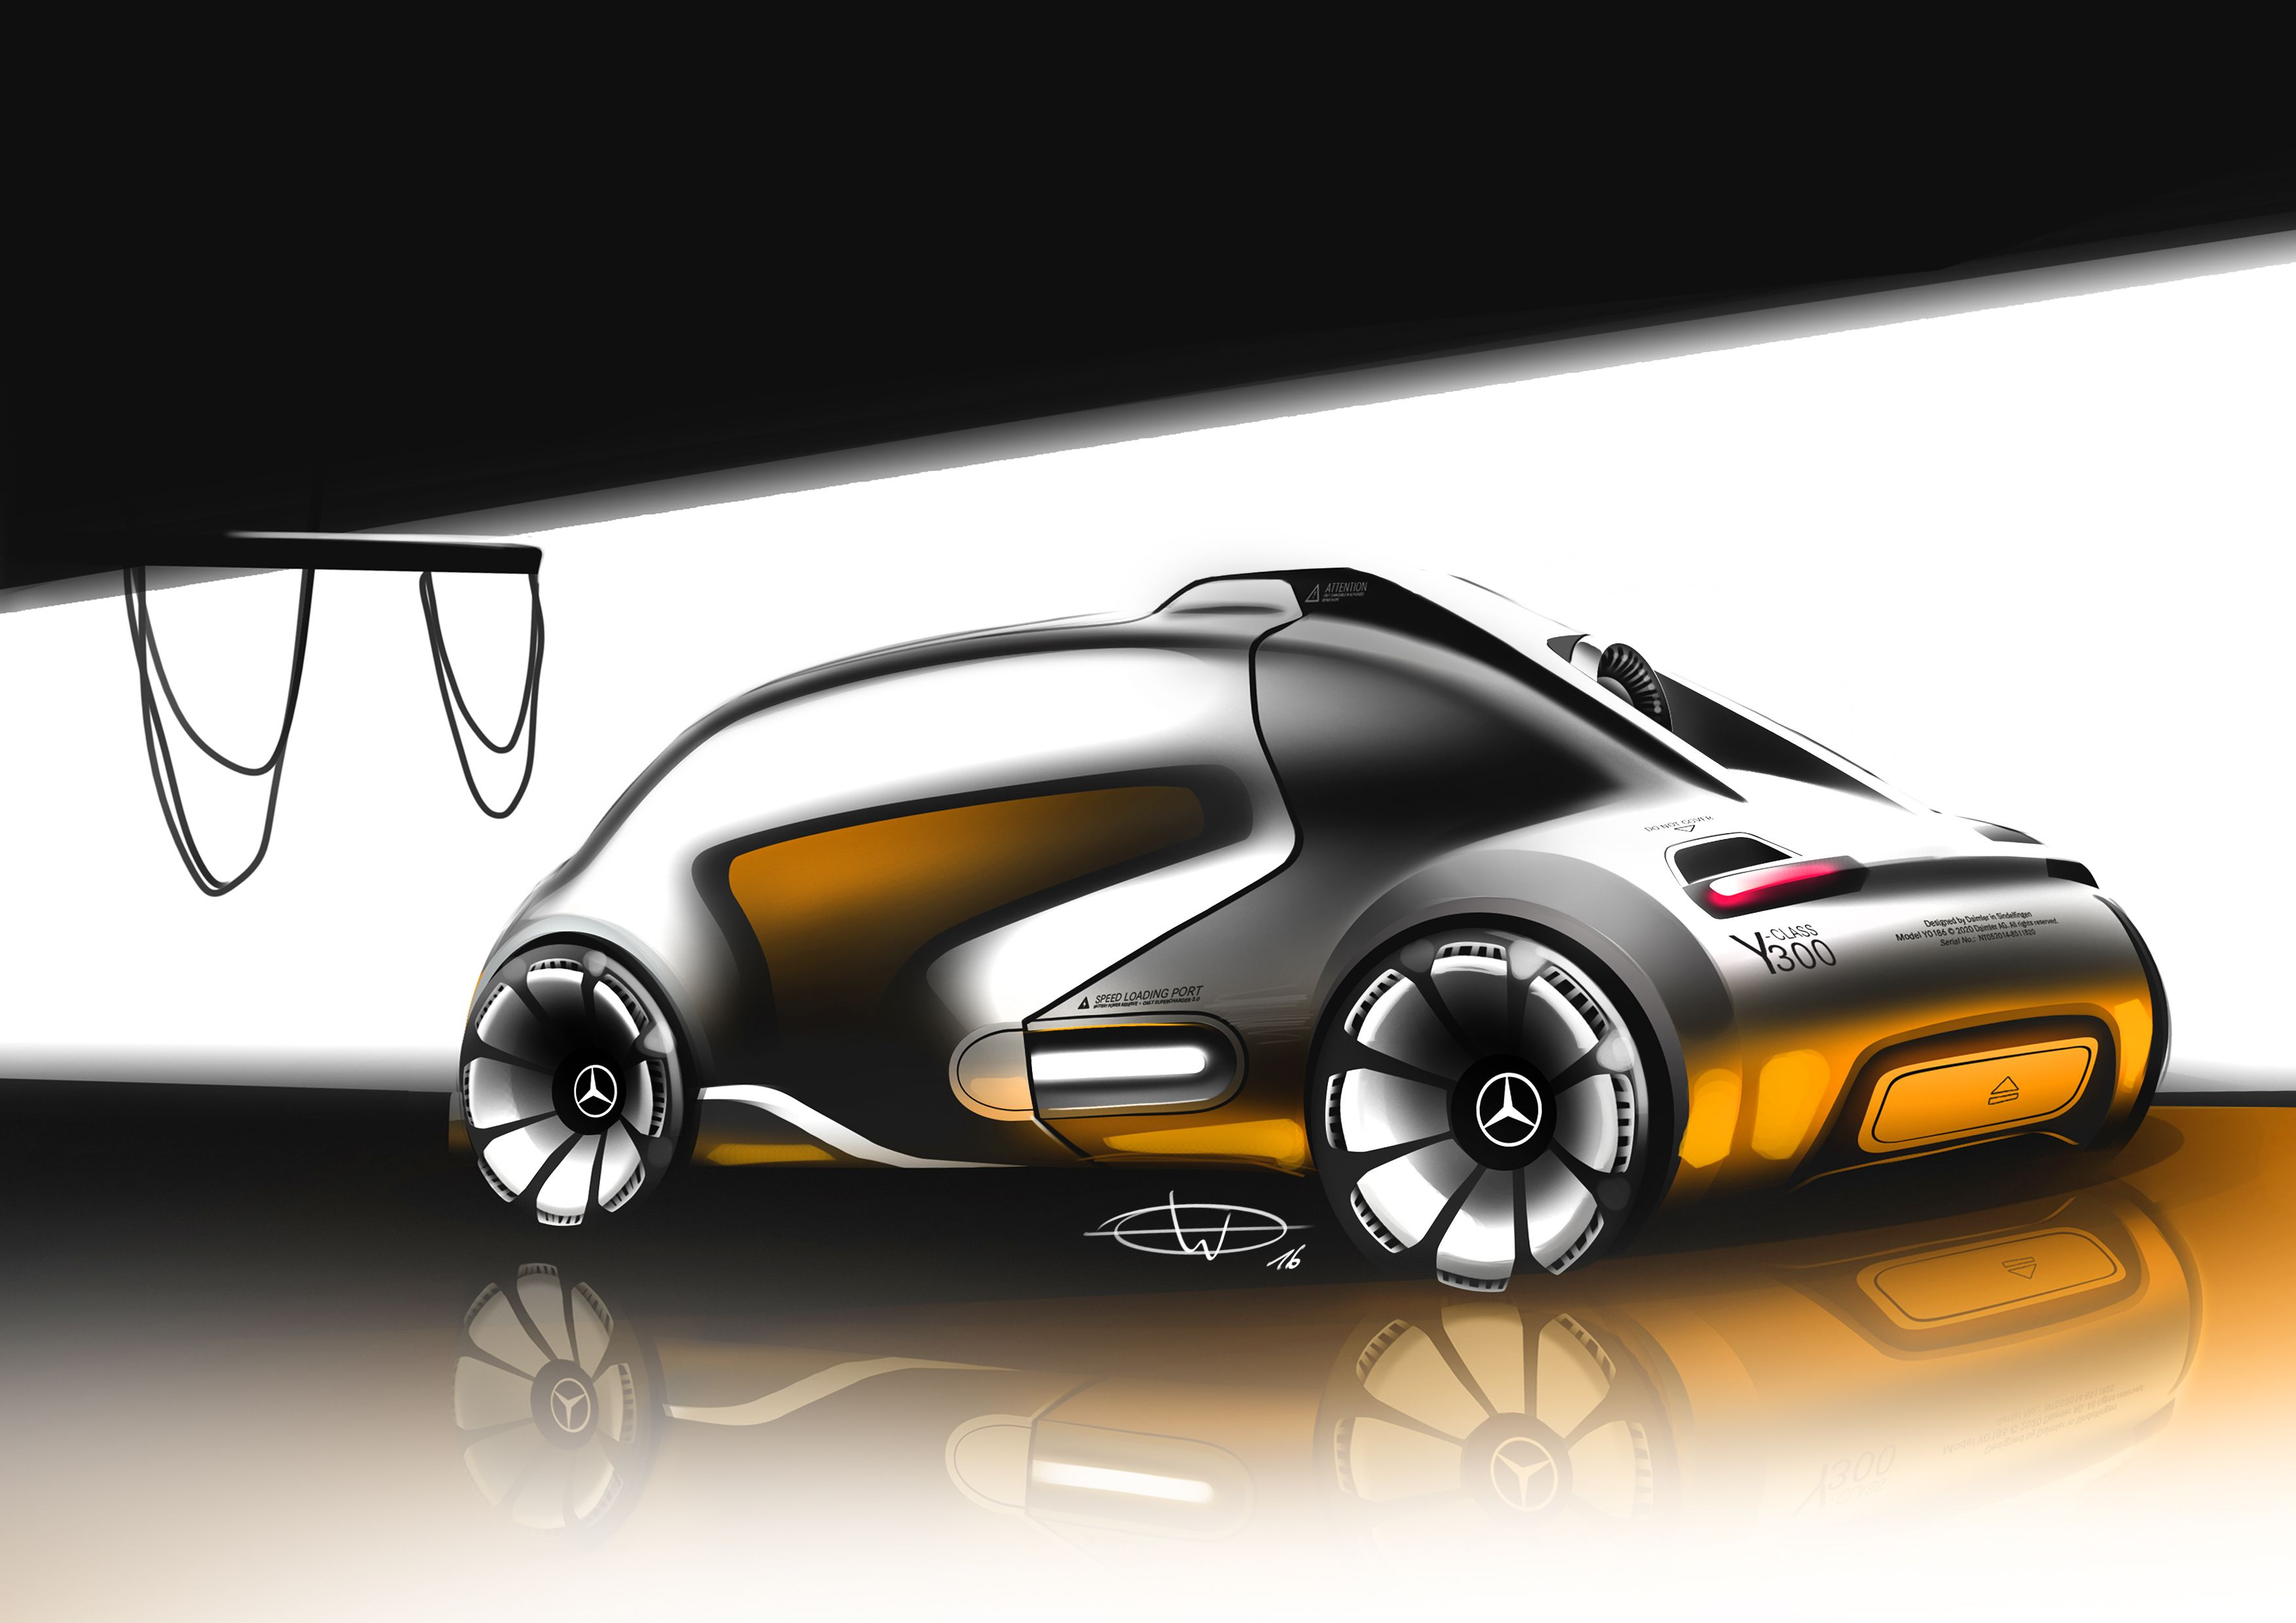 2016 Project Torben Ewe Mercedes Benz Y Class 03 35082480 The Bmw I1 Is An Electric Singleseater Trikecar Concept By Designer